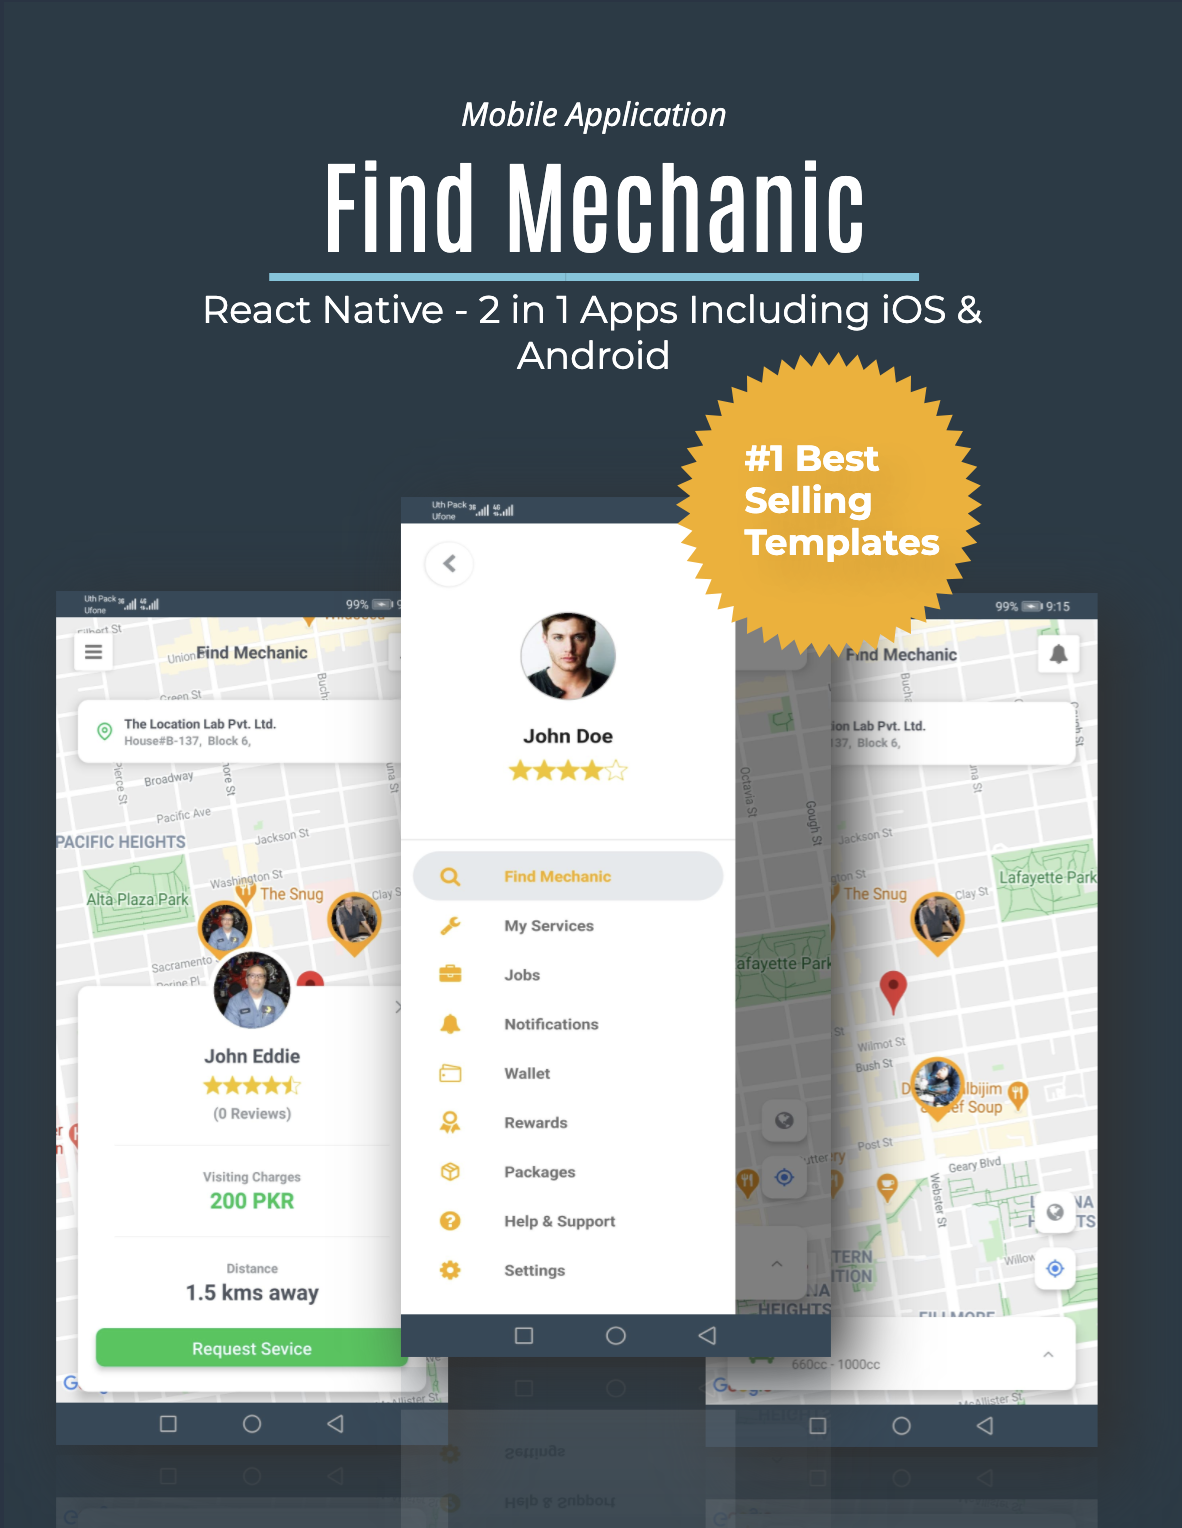 Find Mechanic - Premium React Native Full Application Template for iOS & Android - 1